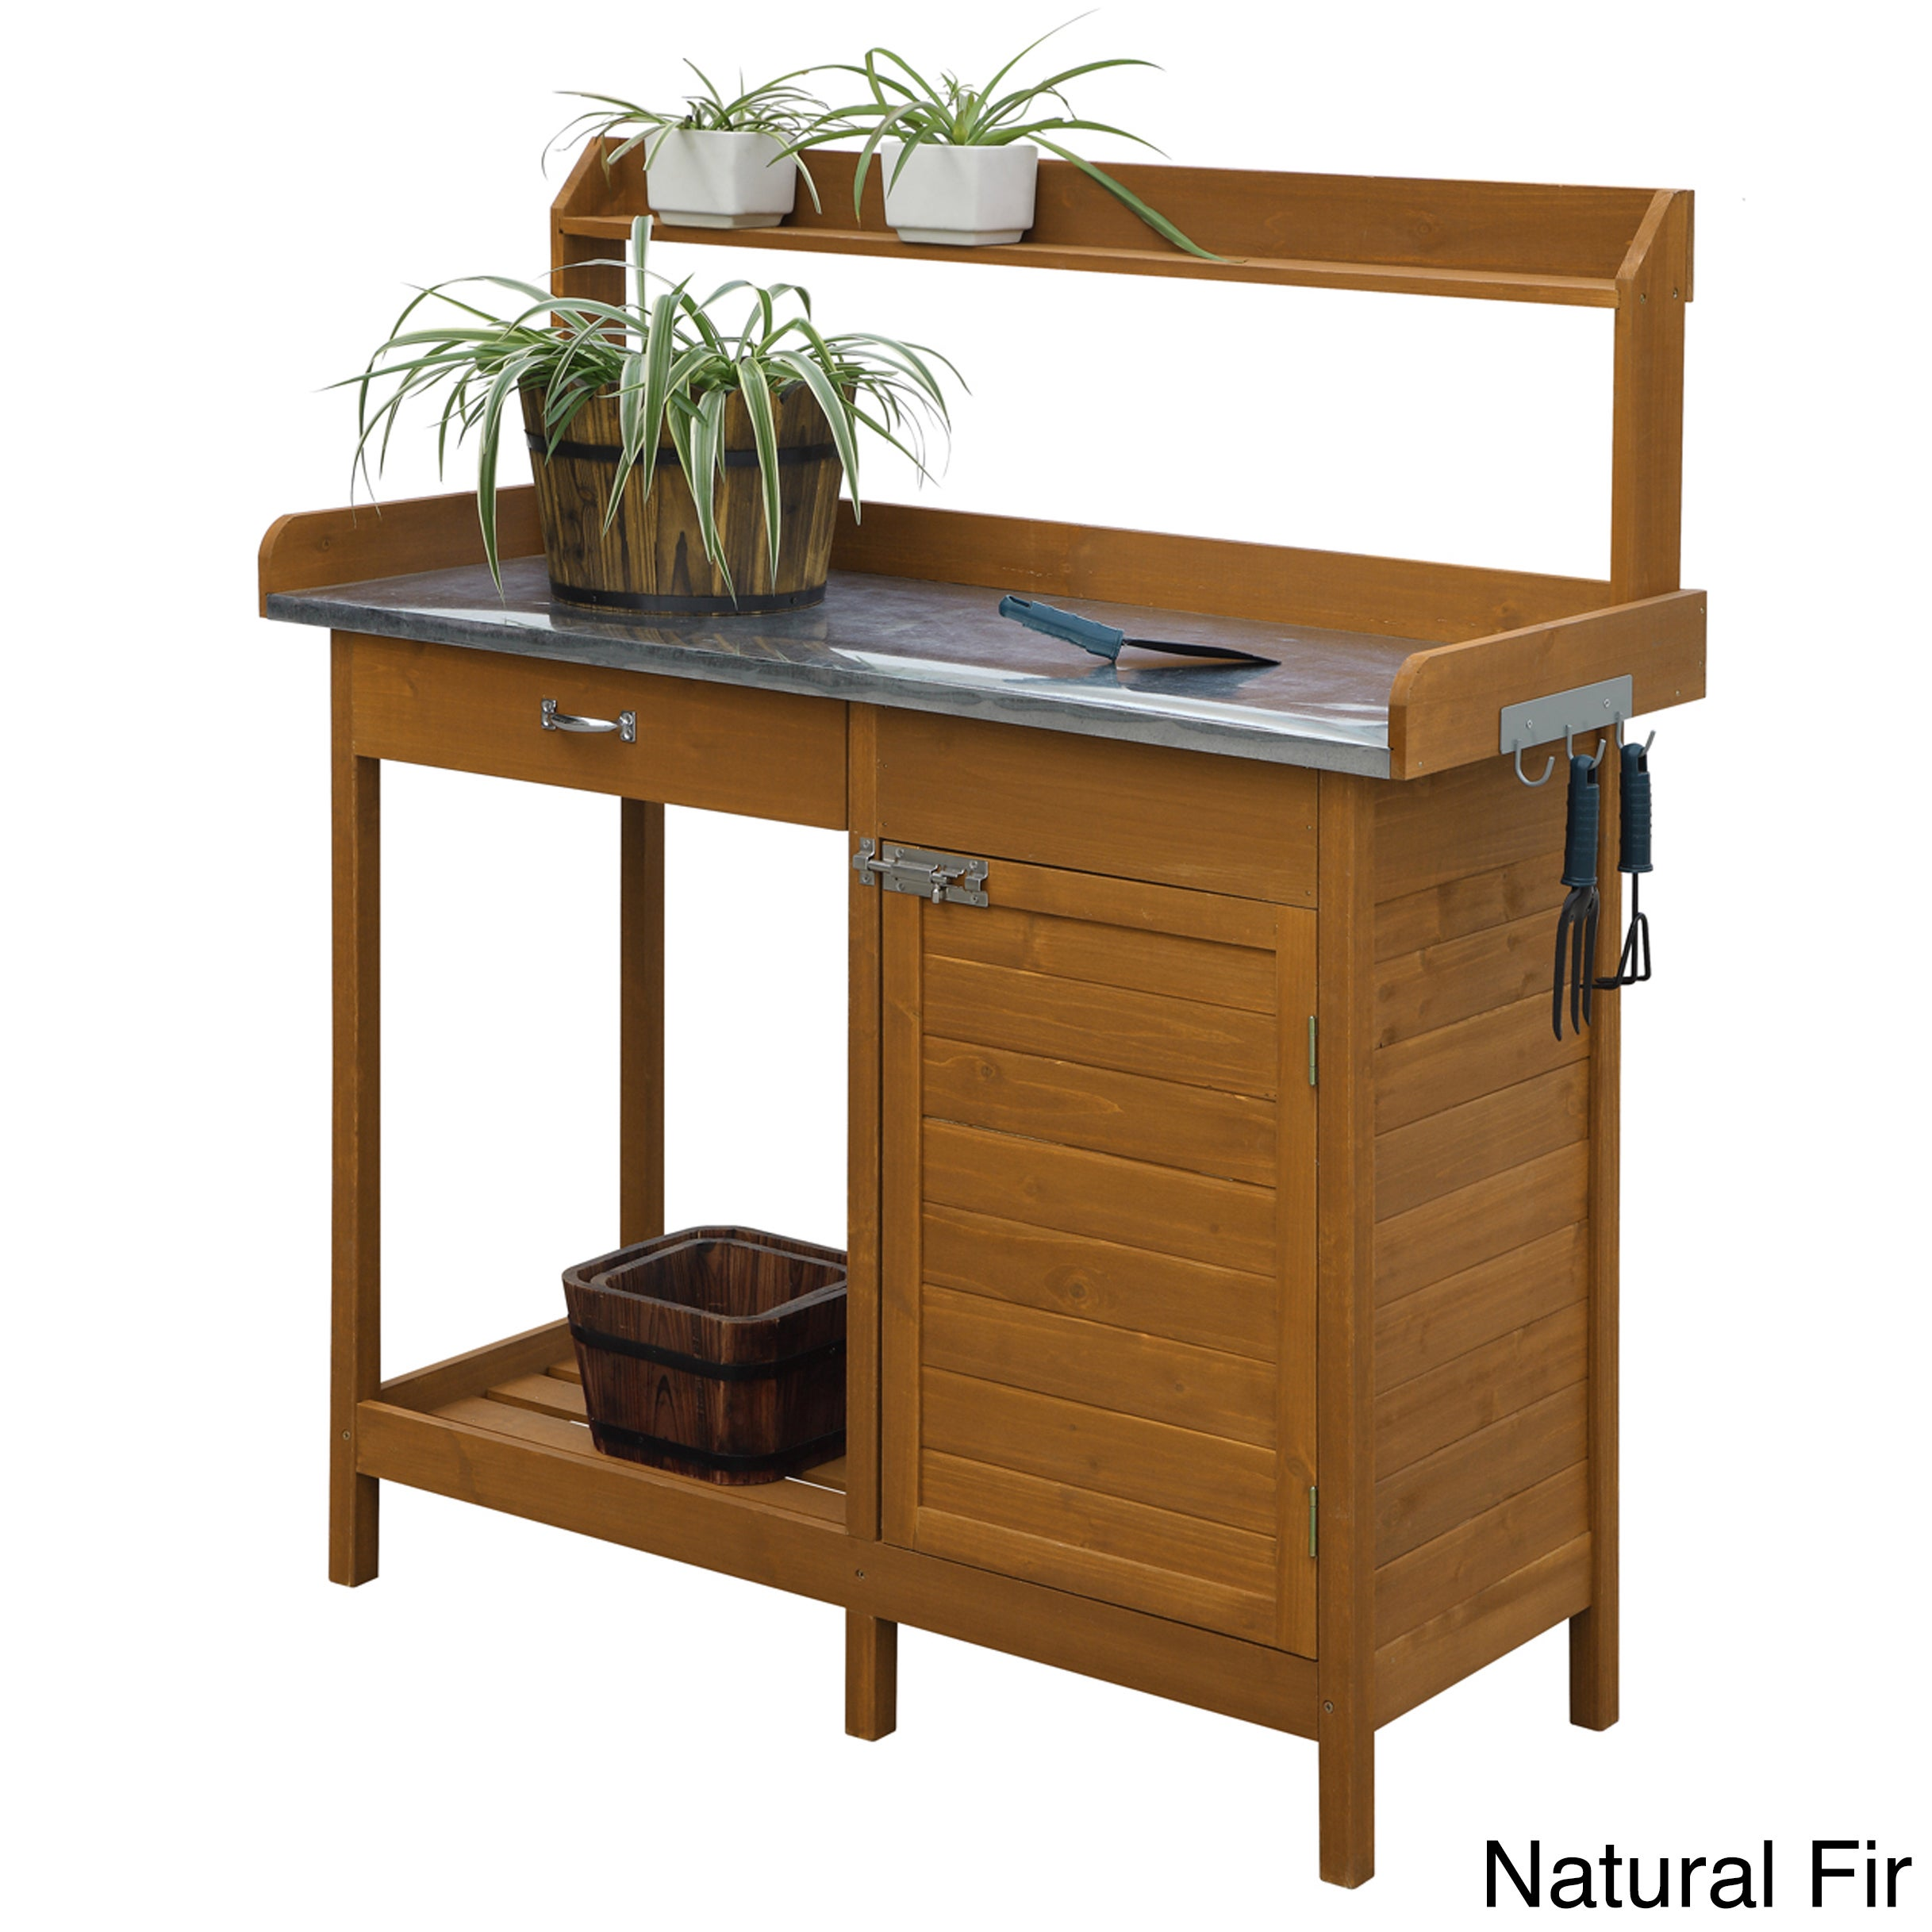 Convenience Concepts Cabinet Deluxe Potting Bench (Natura...